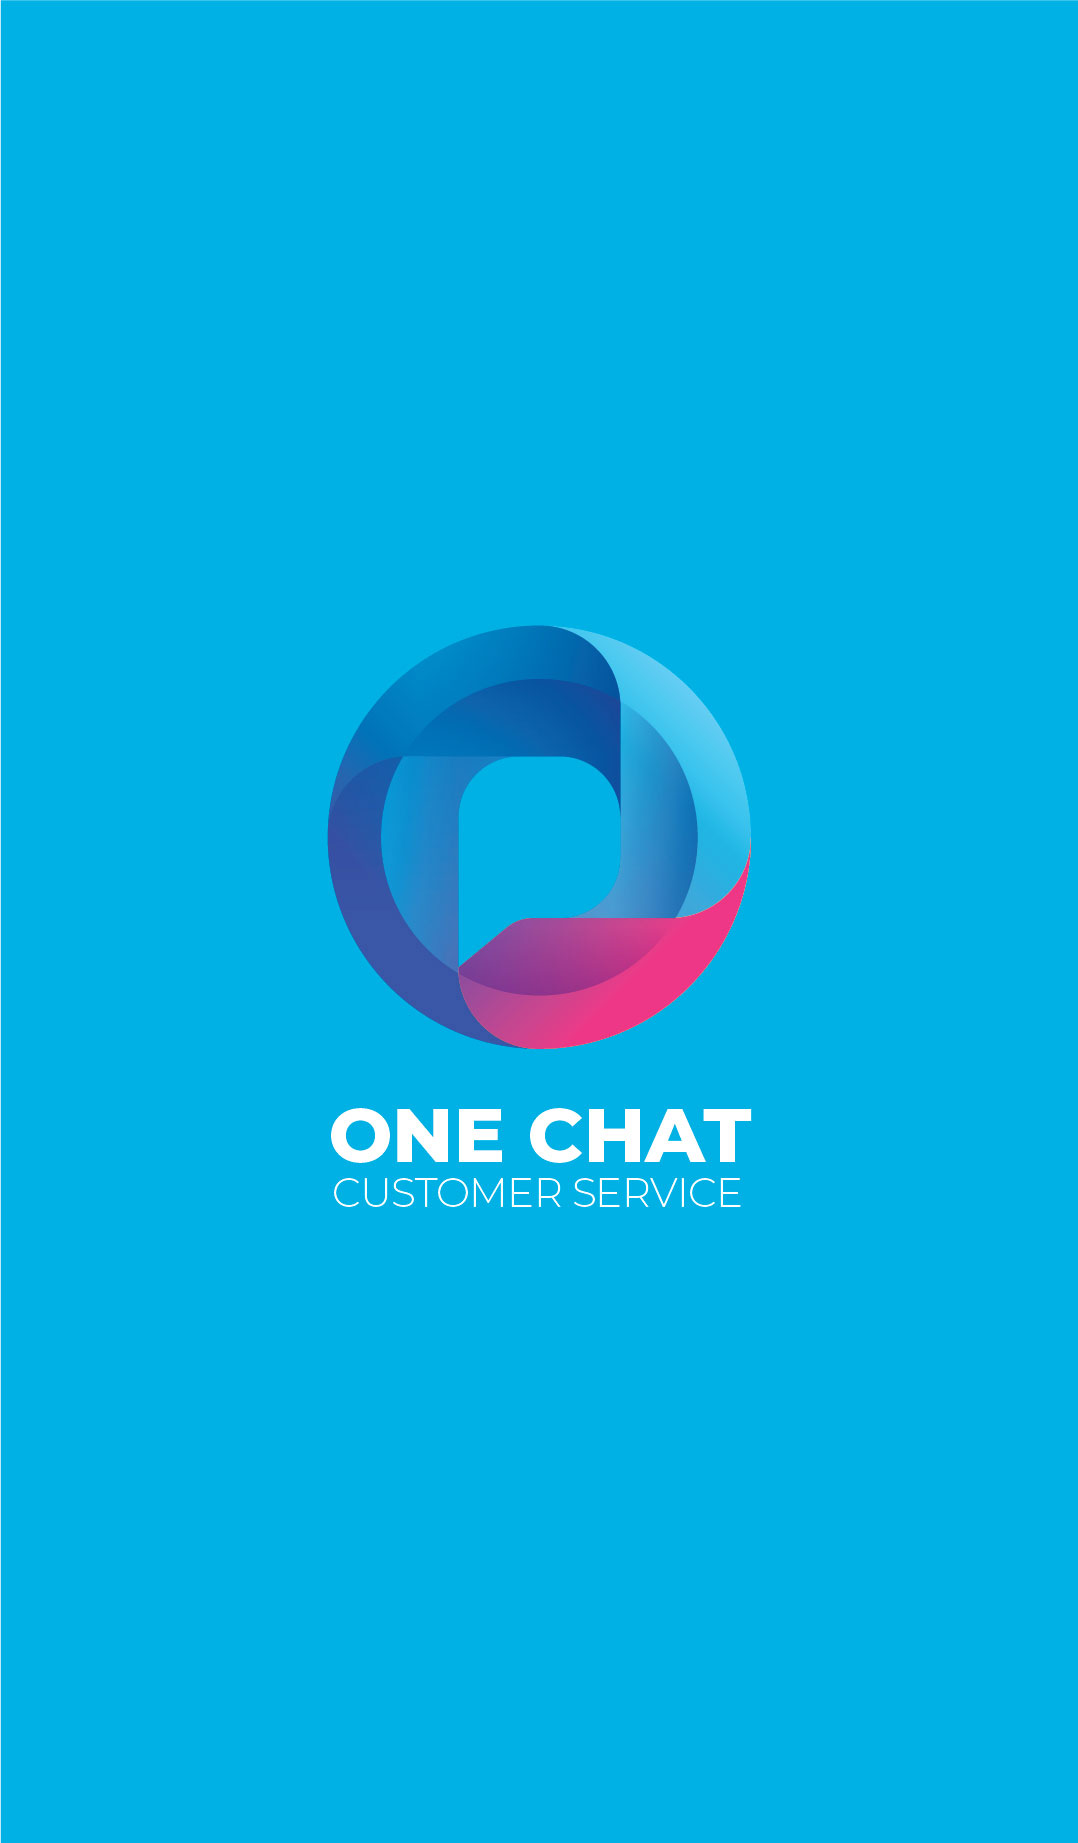 logo design service for One Chat